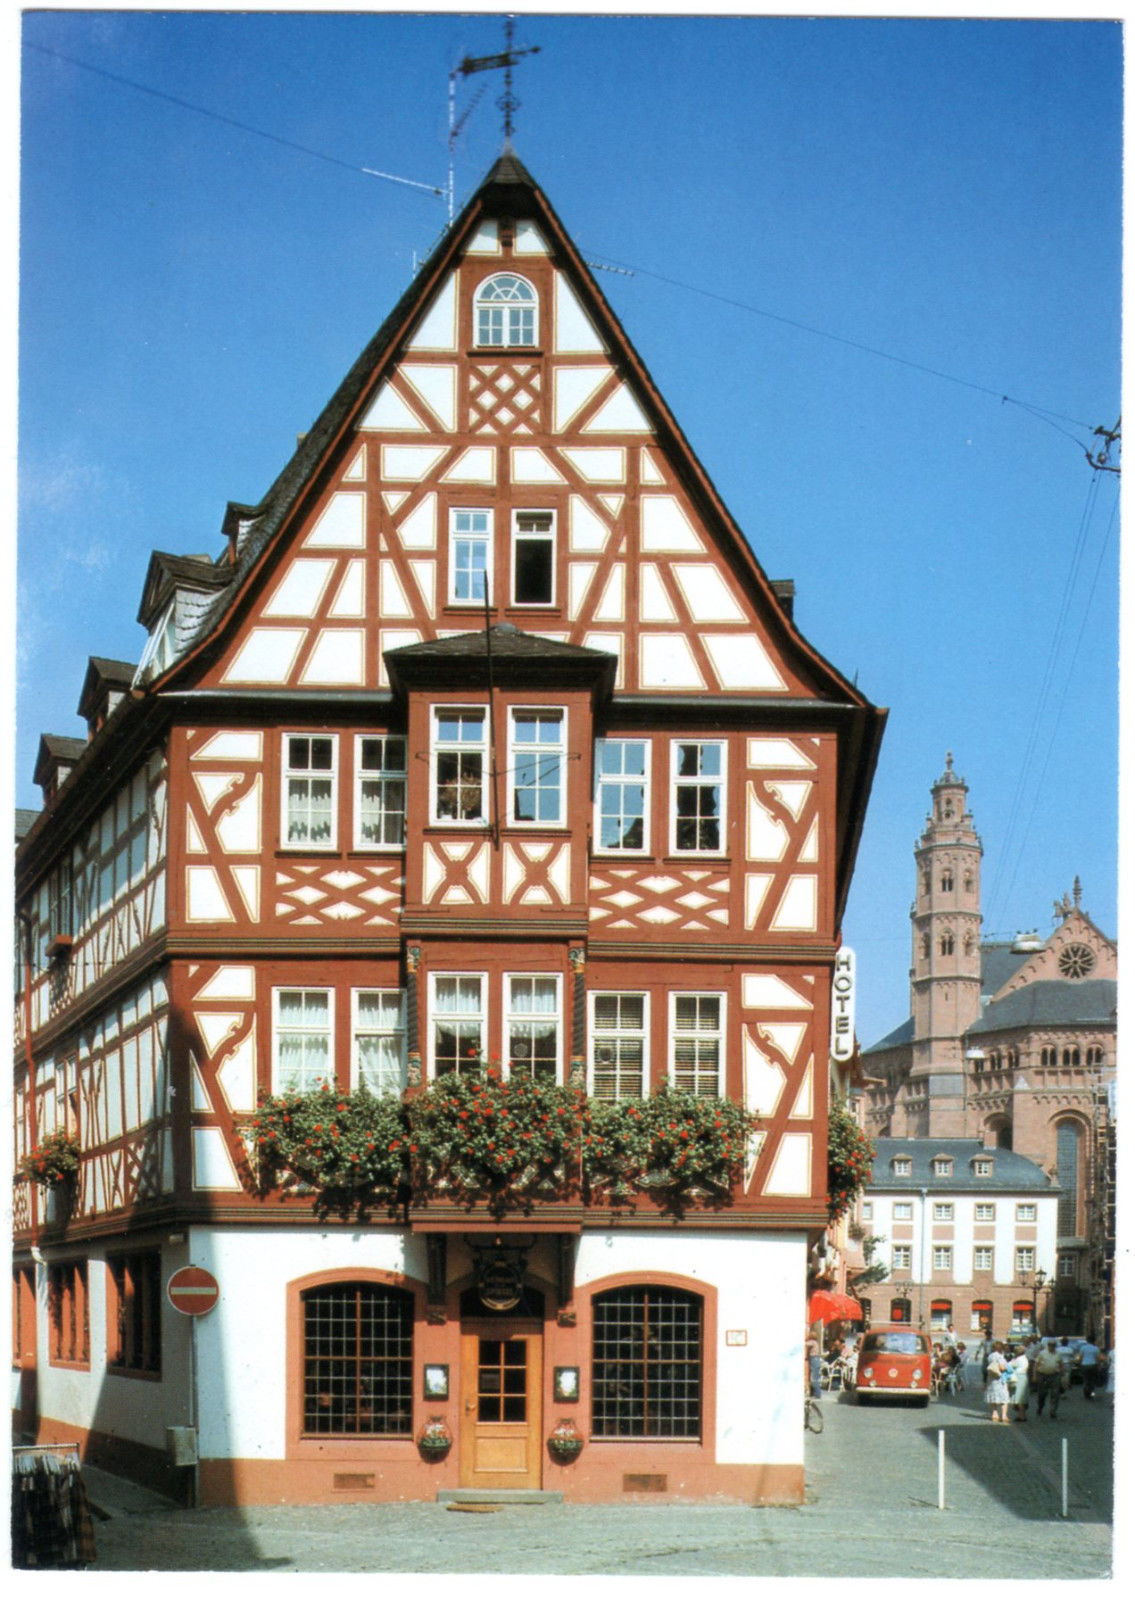 mainz am rhein haus zum grossen spiegel german postcard hippostcard. Black Bedroom Furniture Sets. Home Design Ideas